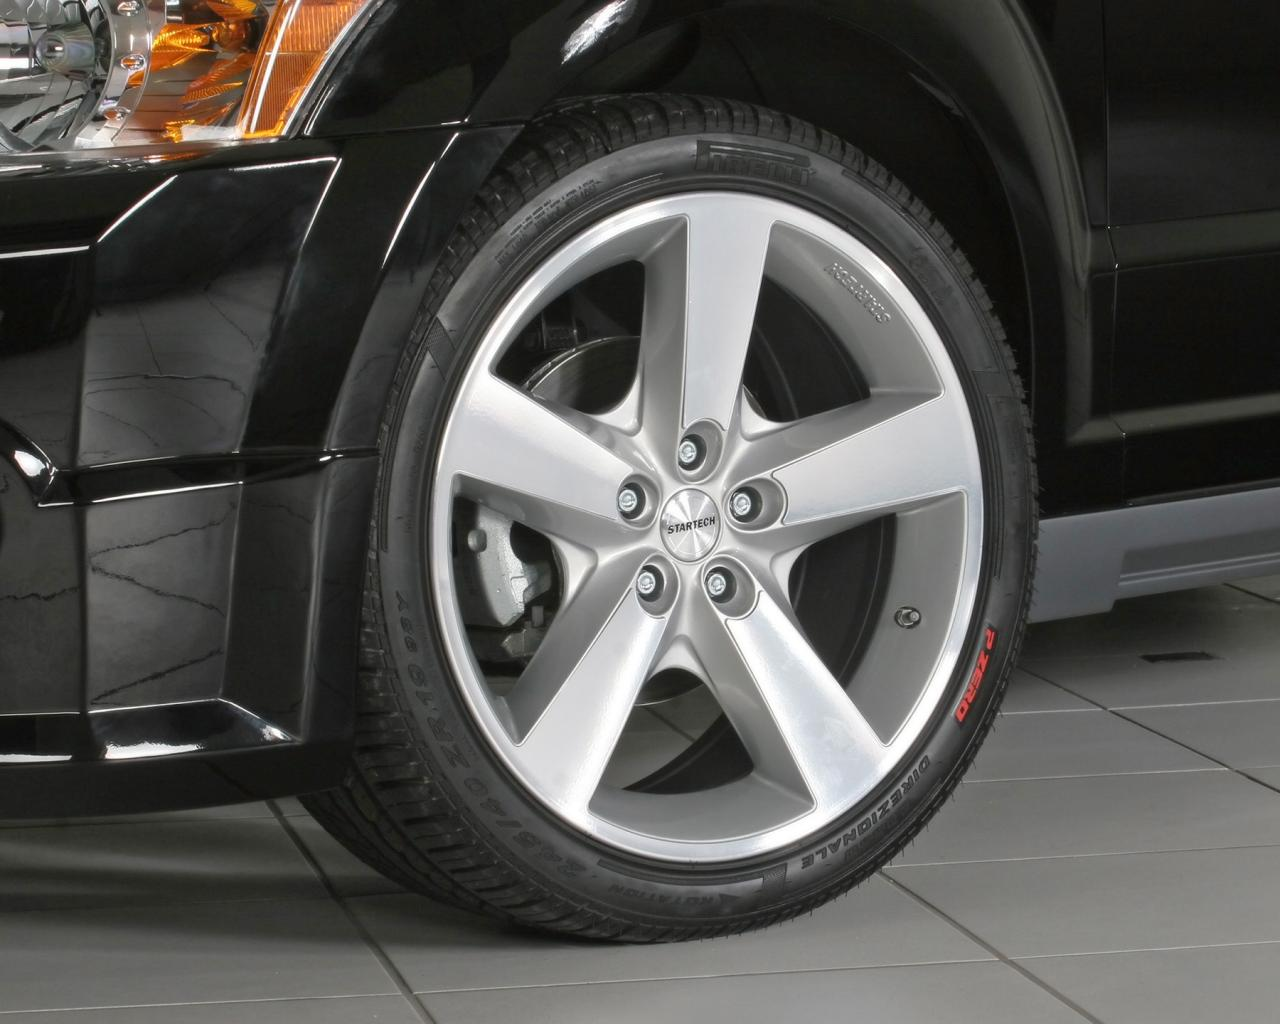 2007 Startech Dodge Caliber Wheel 1280x1024